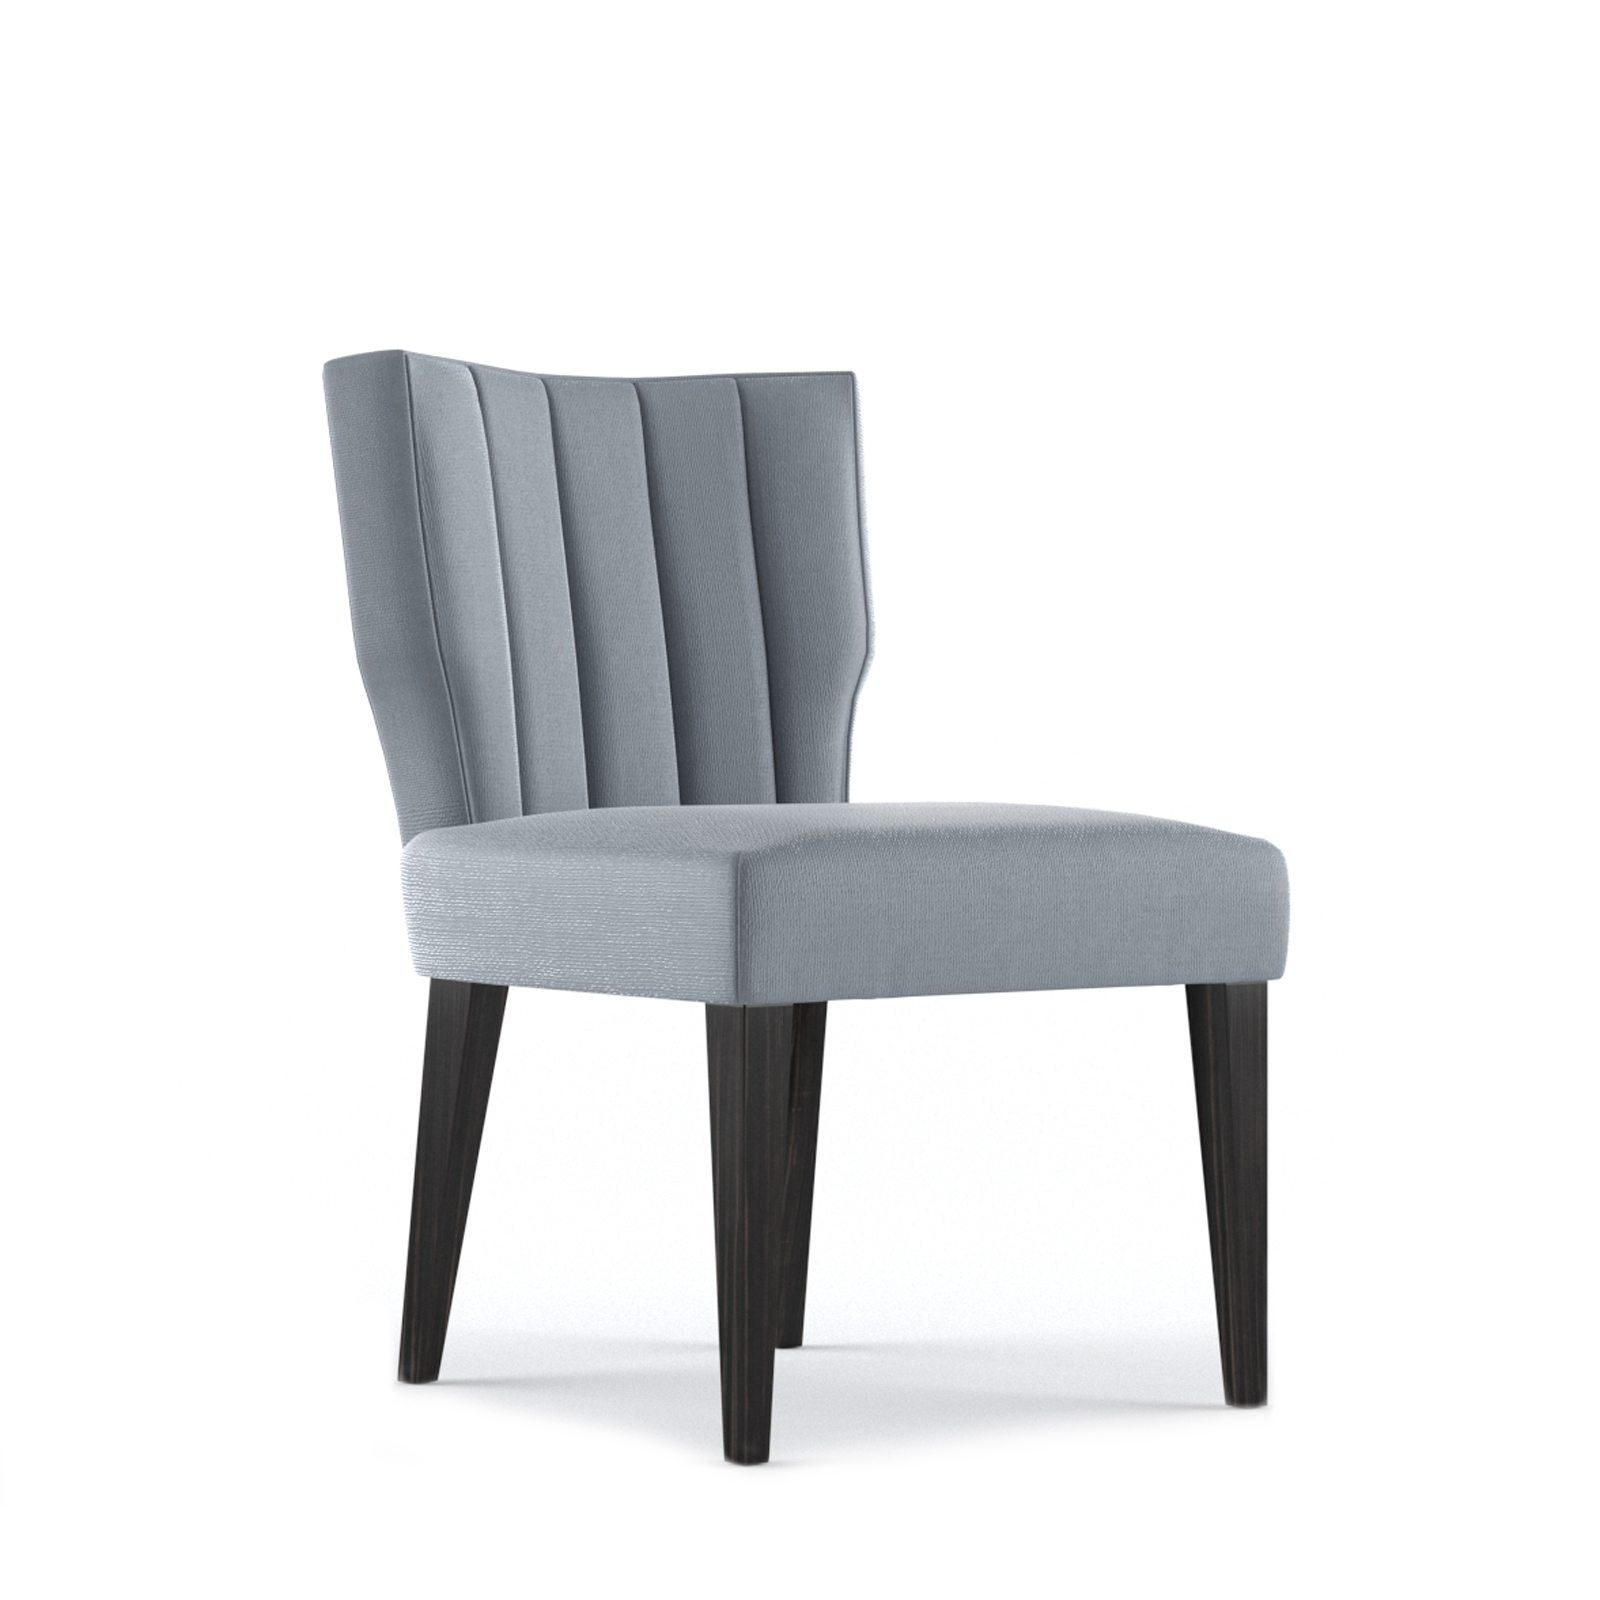 Heath-Dining-Chair-by-Bonham-&-Bonham-11